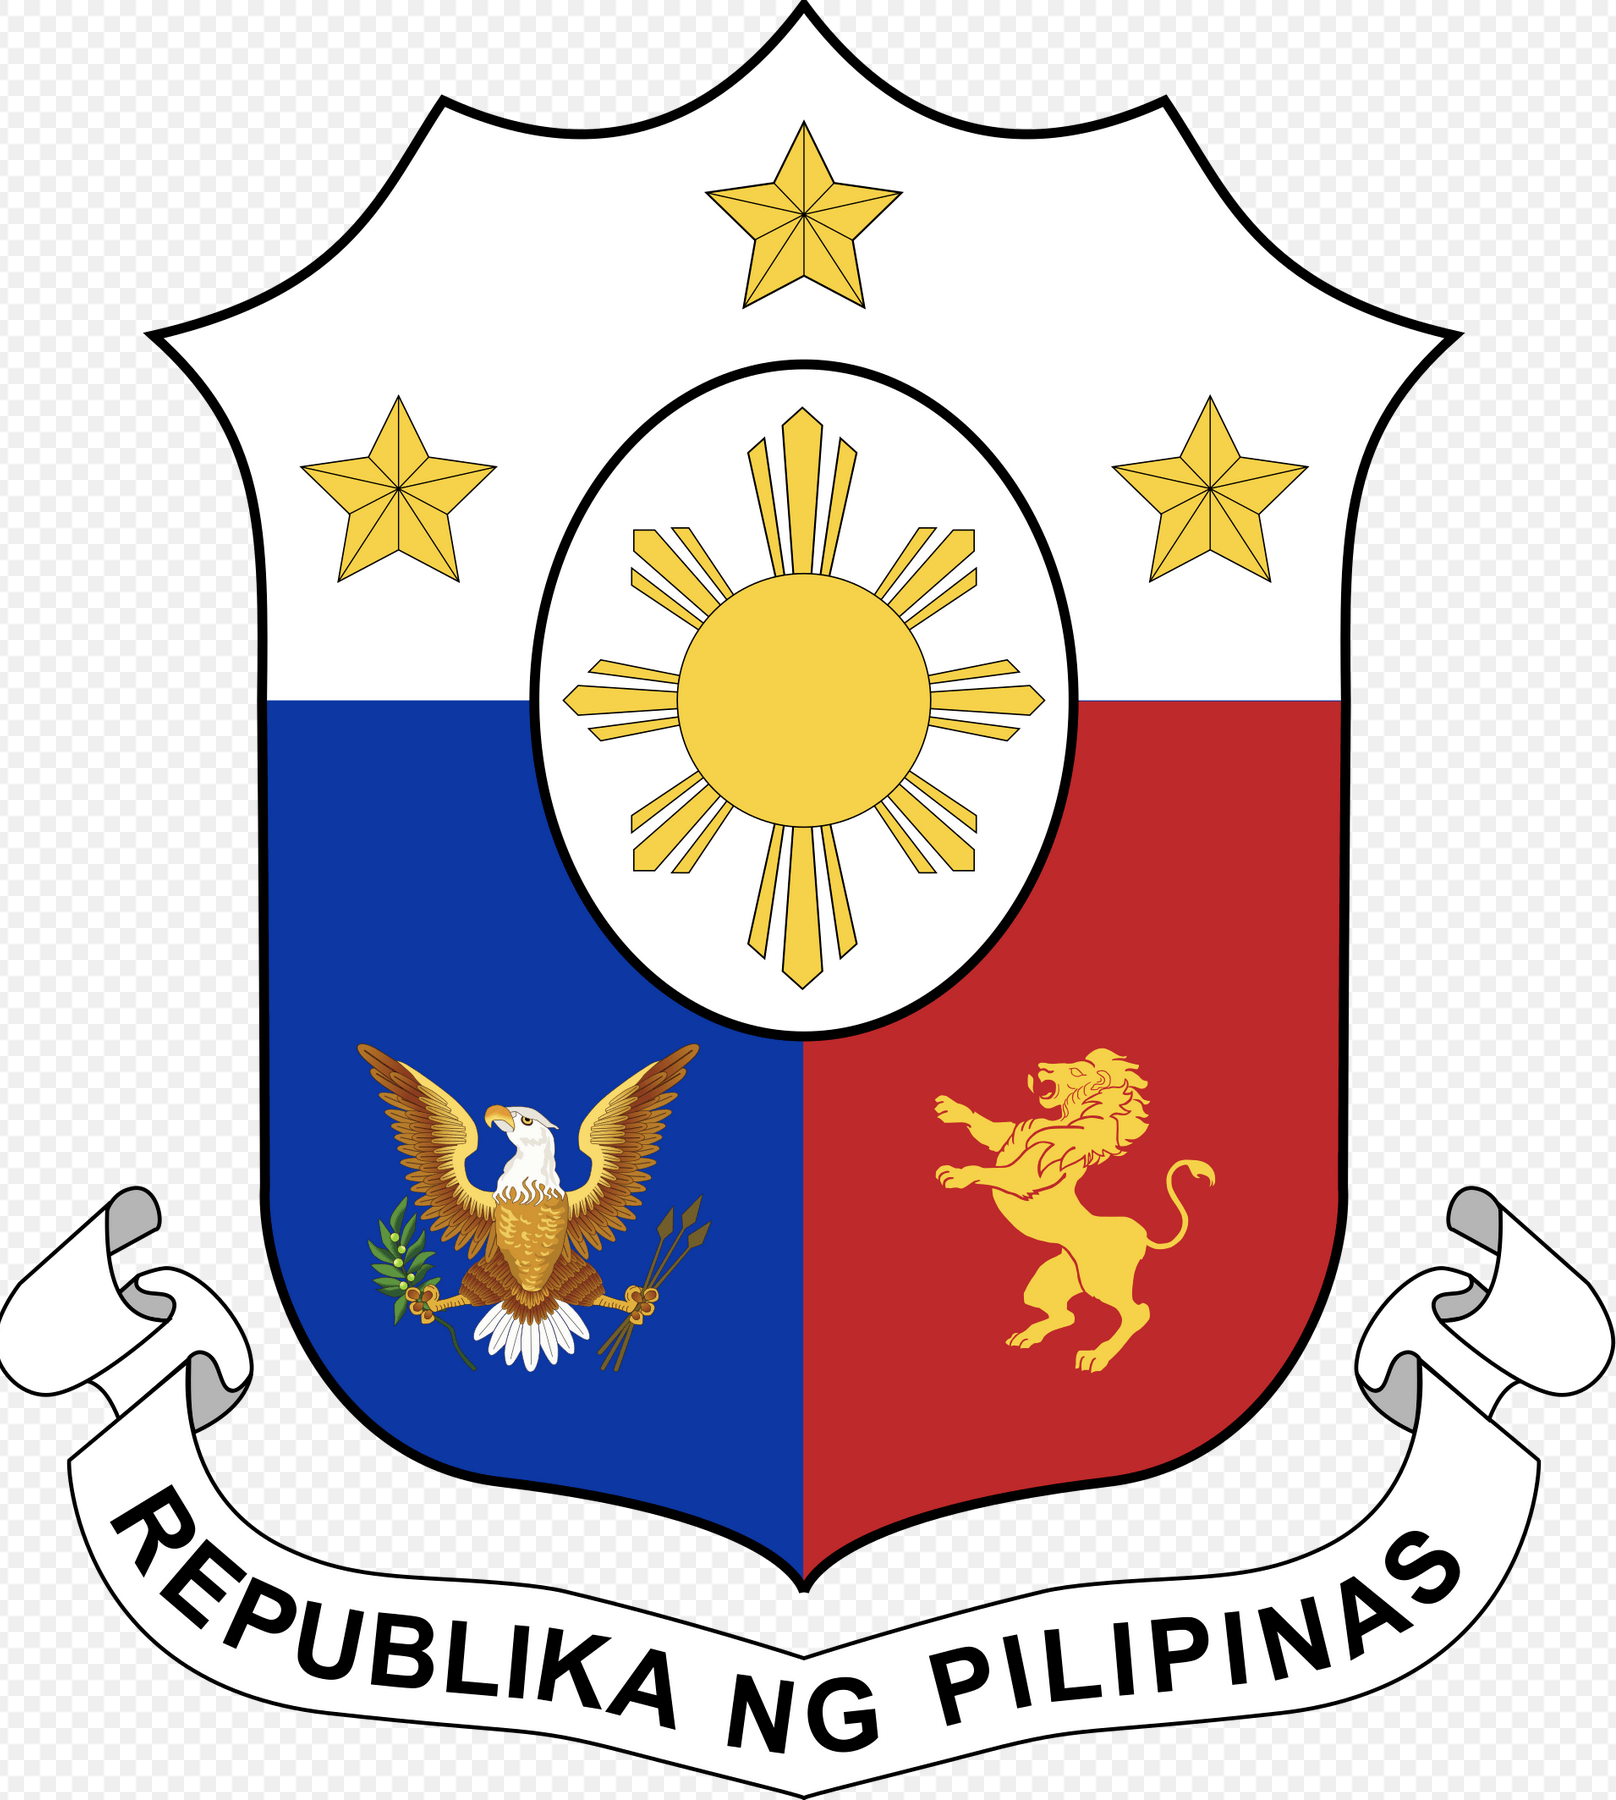 Philippines Data Privacy Act of 2012